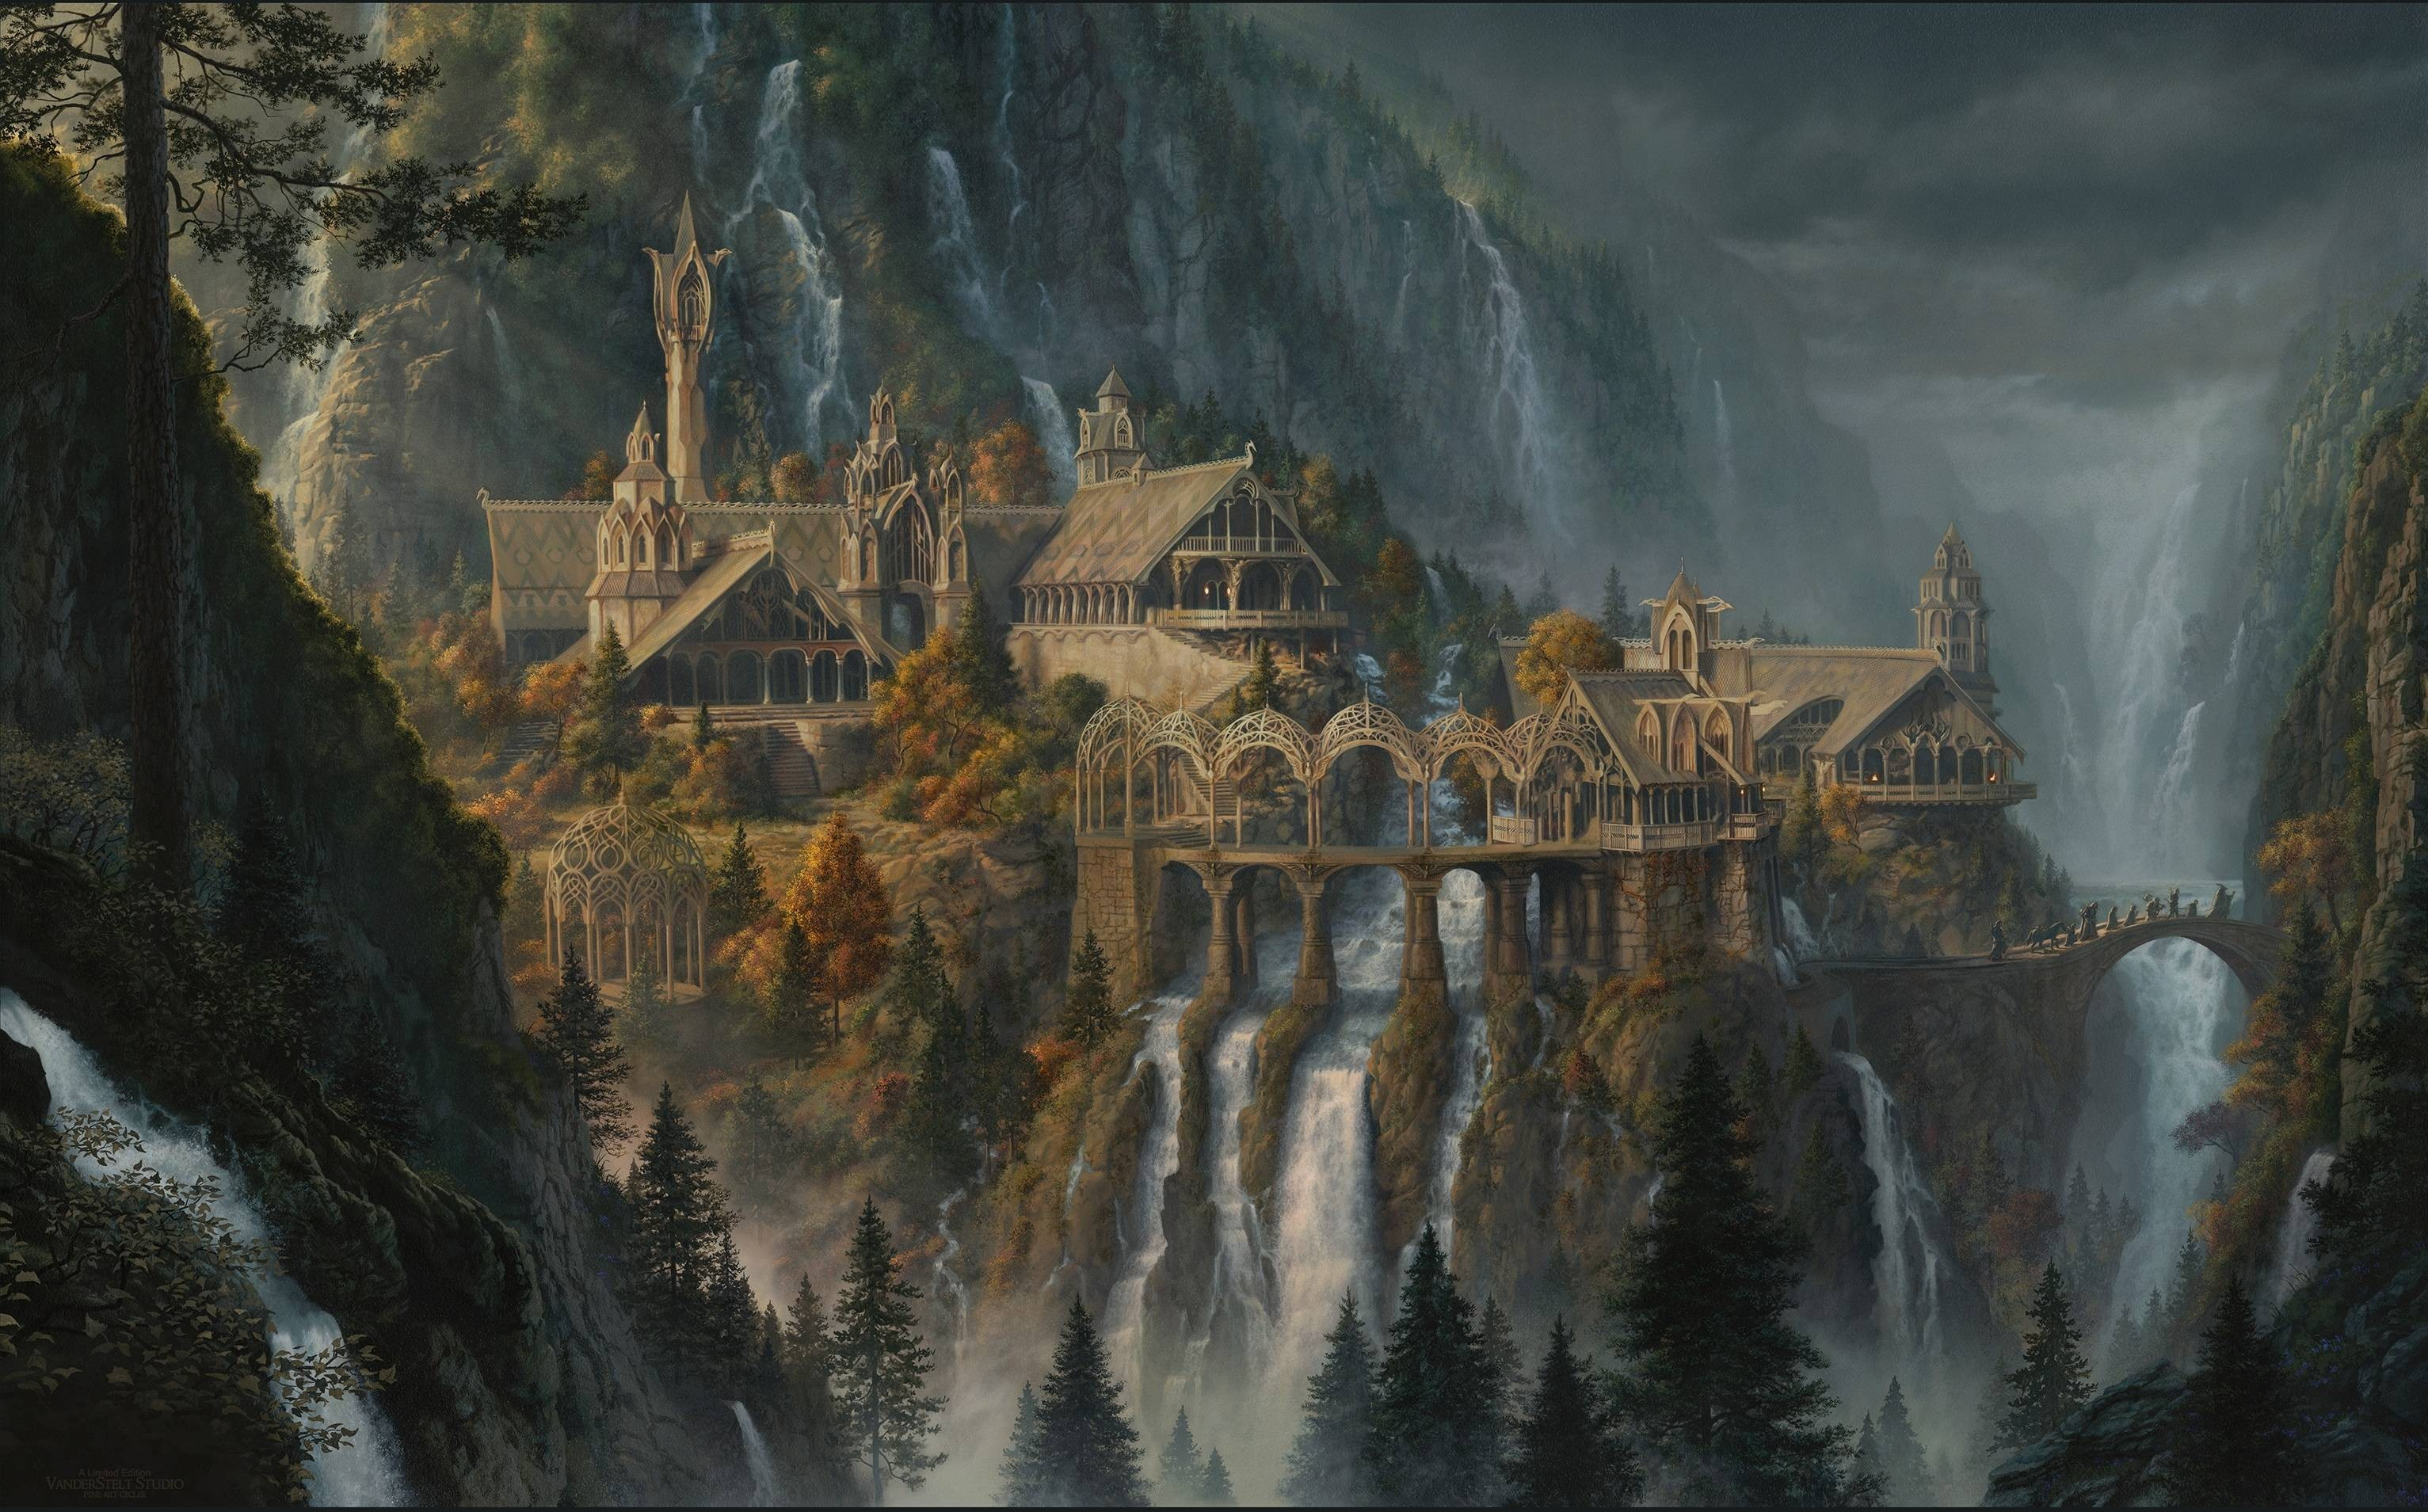 Lord of the rings wallpaper download free wallpapers for lord voltagebd Image collections